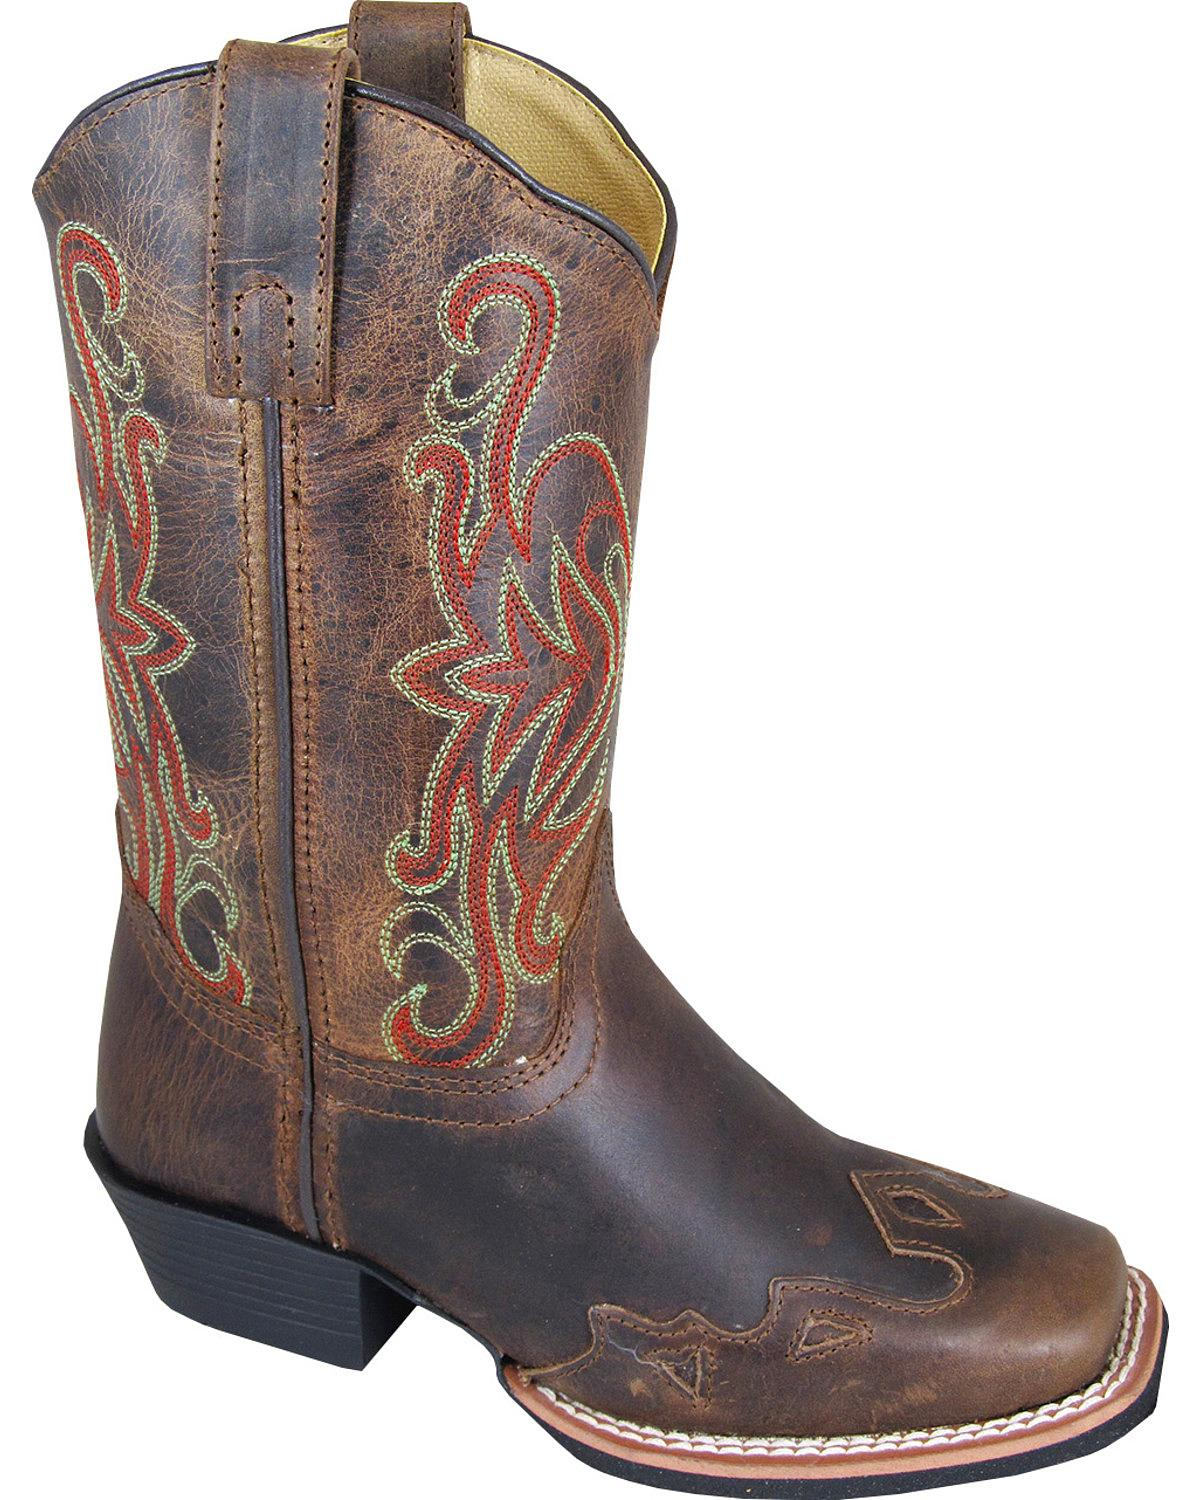 Smoky Mountain Boys' Rialto Western Boot Square Toe - 3446C